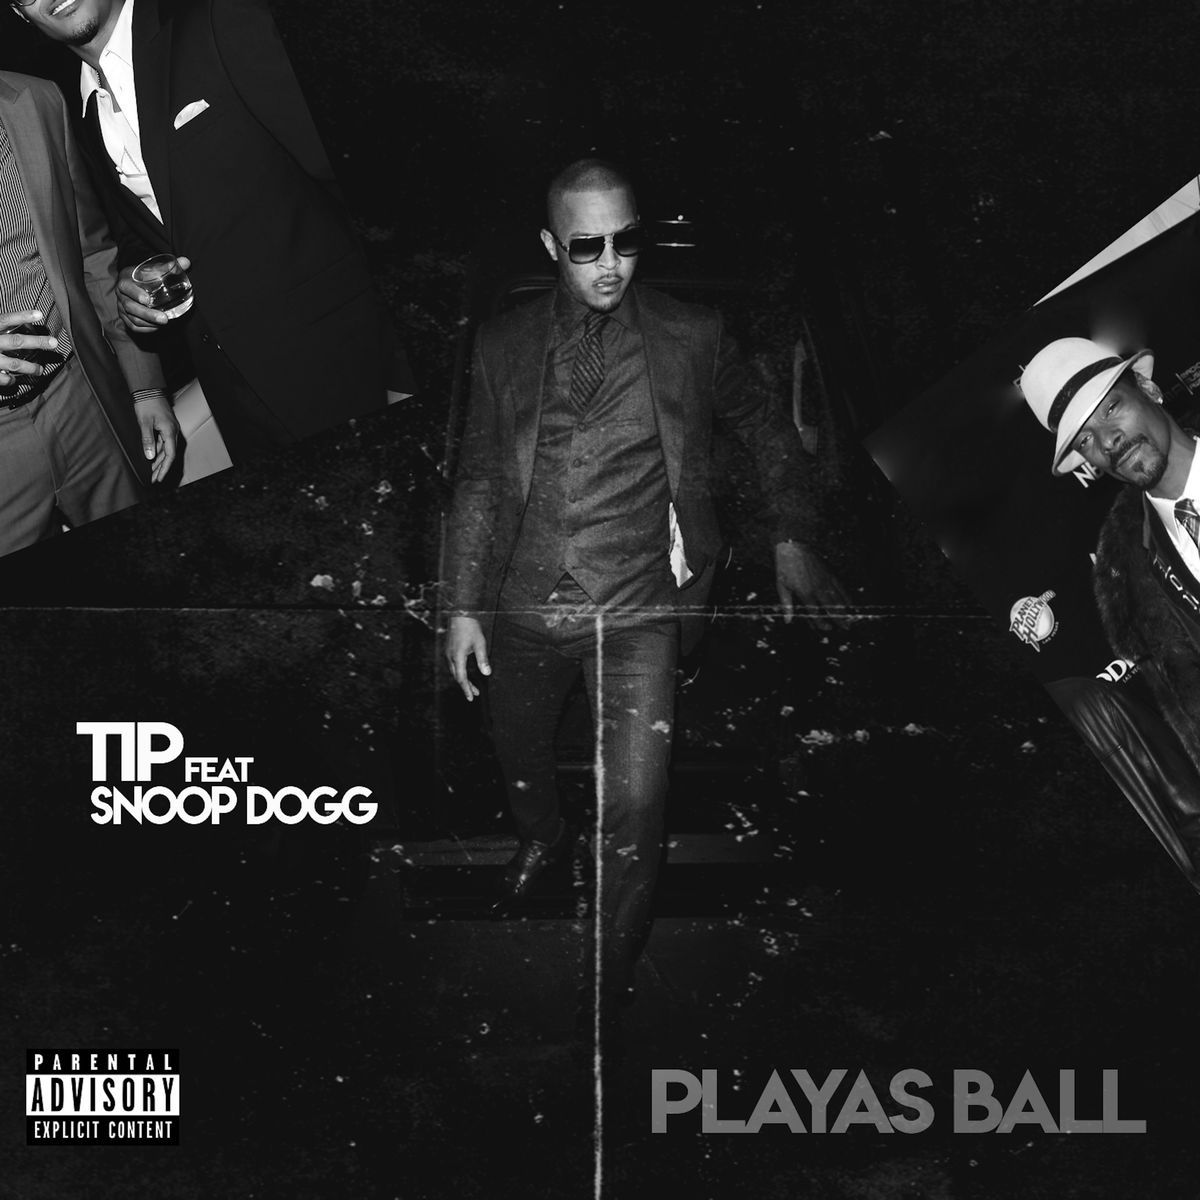 """New Music: T.I. – """"Playas Ball"""" (feat. Snoop Dogg)"""